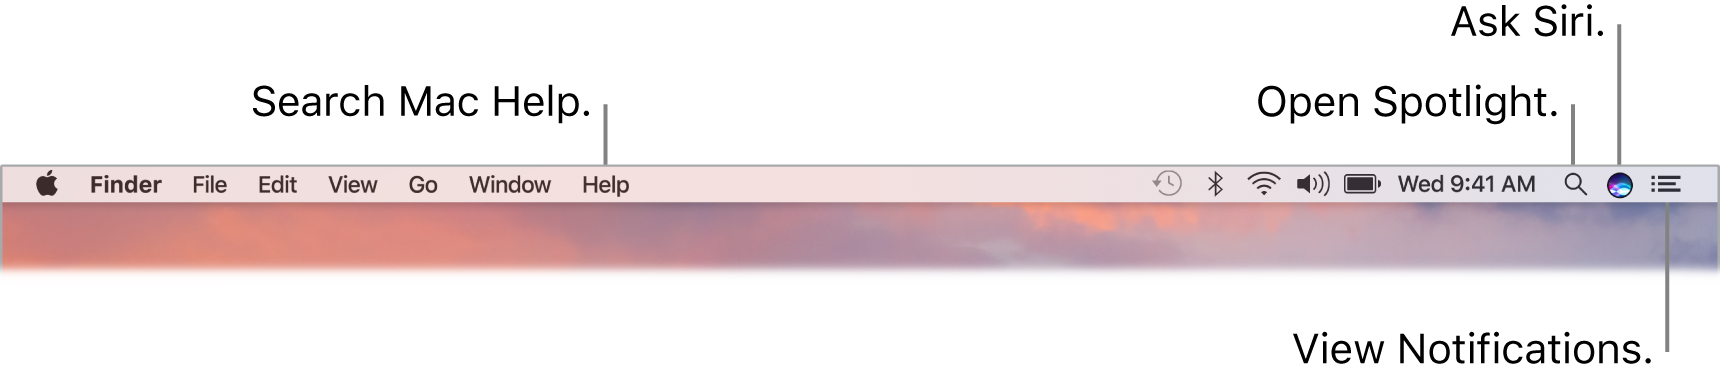 The menu bar with callouts to Search Mac Help, Open Spotlight, Ask Siri, and View Notifications.